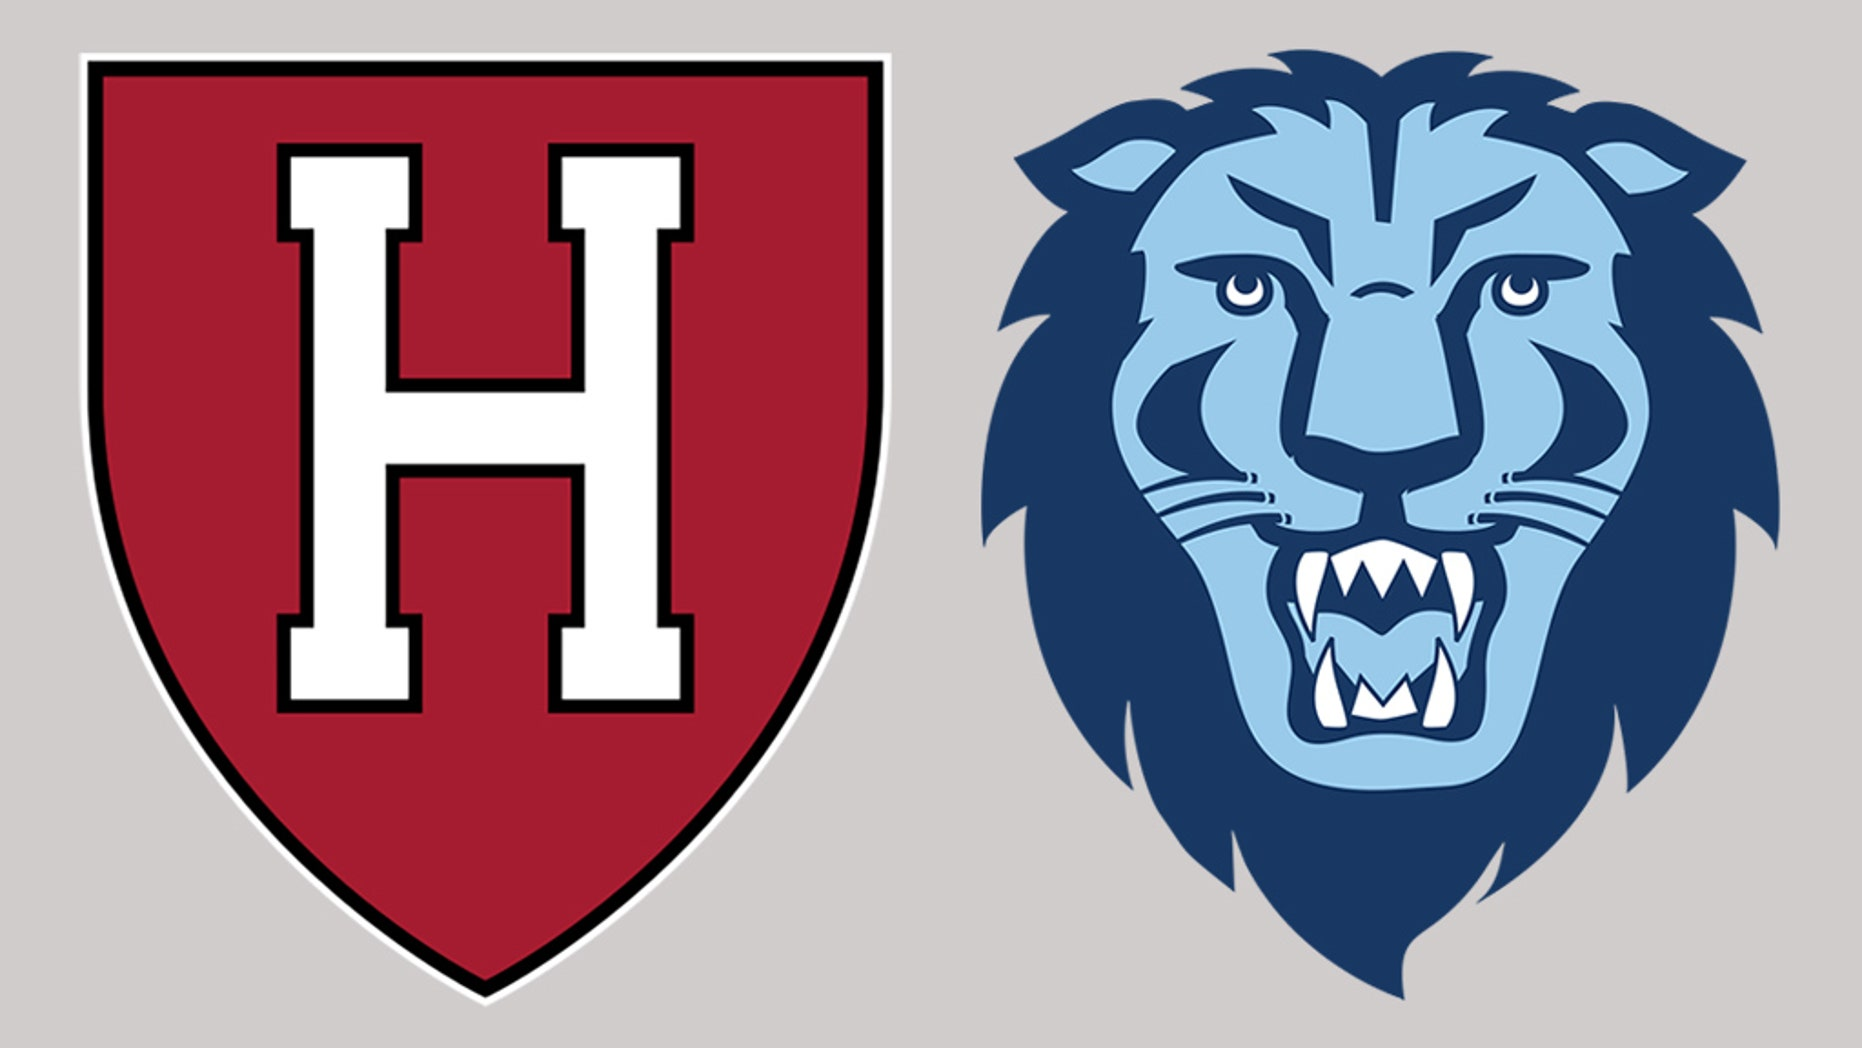 A dramatic basketball game between two Ivy League schools, Harvard and Columbia, led to an even more climactic finish on Friday night.